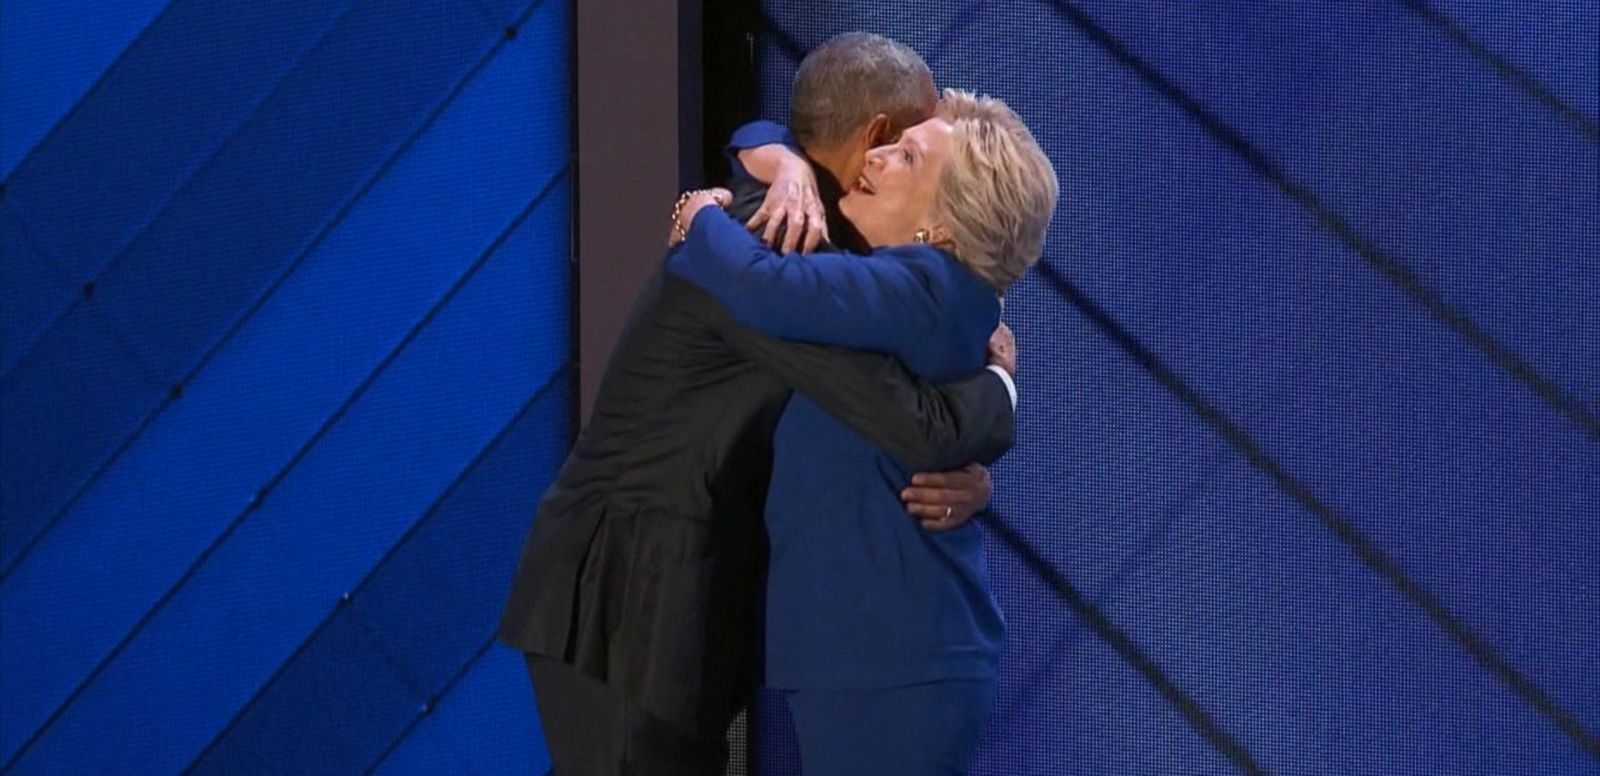 VIDEO: Hillary Clinton Joins President Obama at DNC